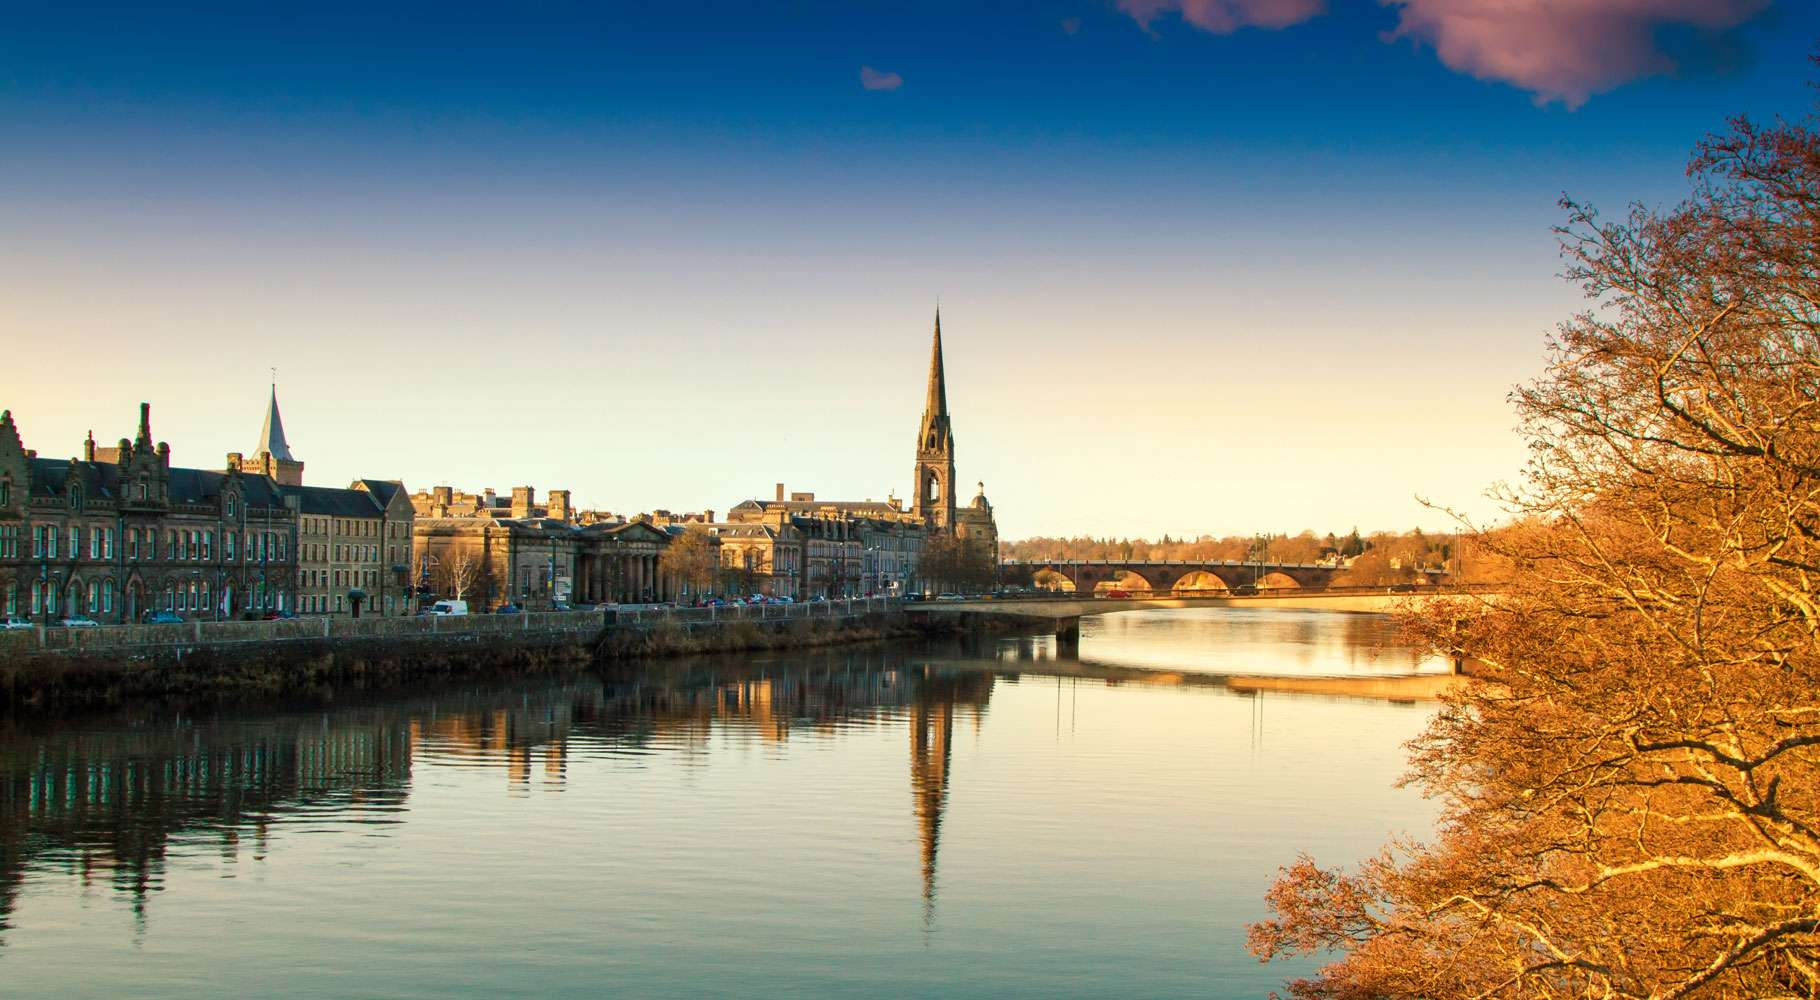 Perth historic city and River Tay